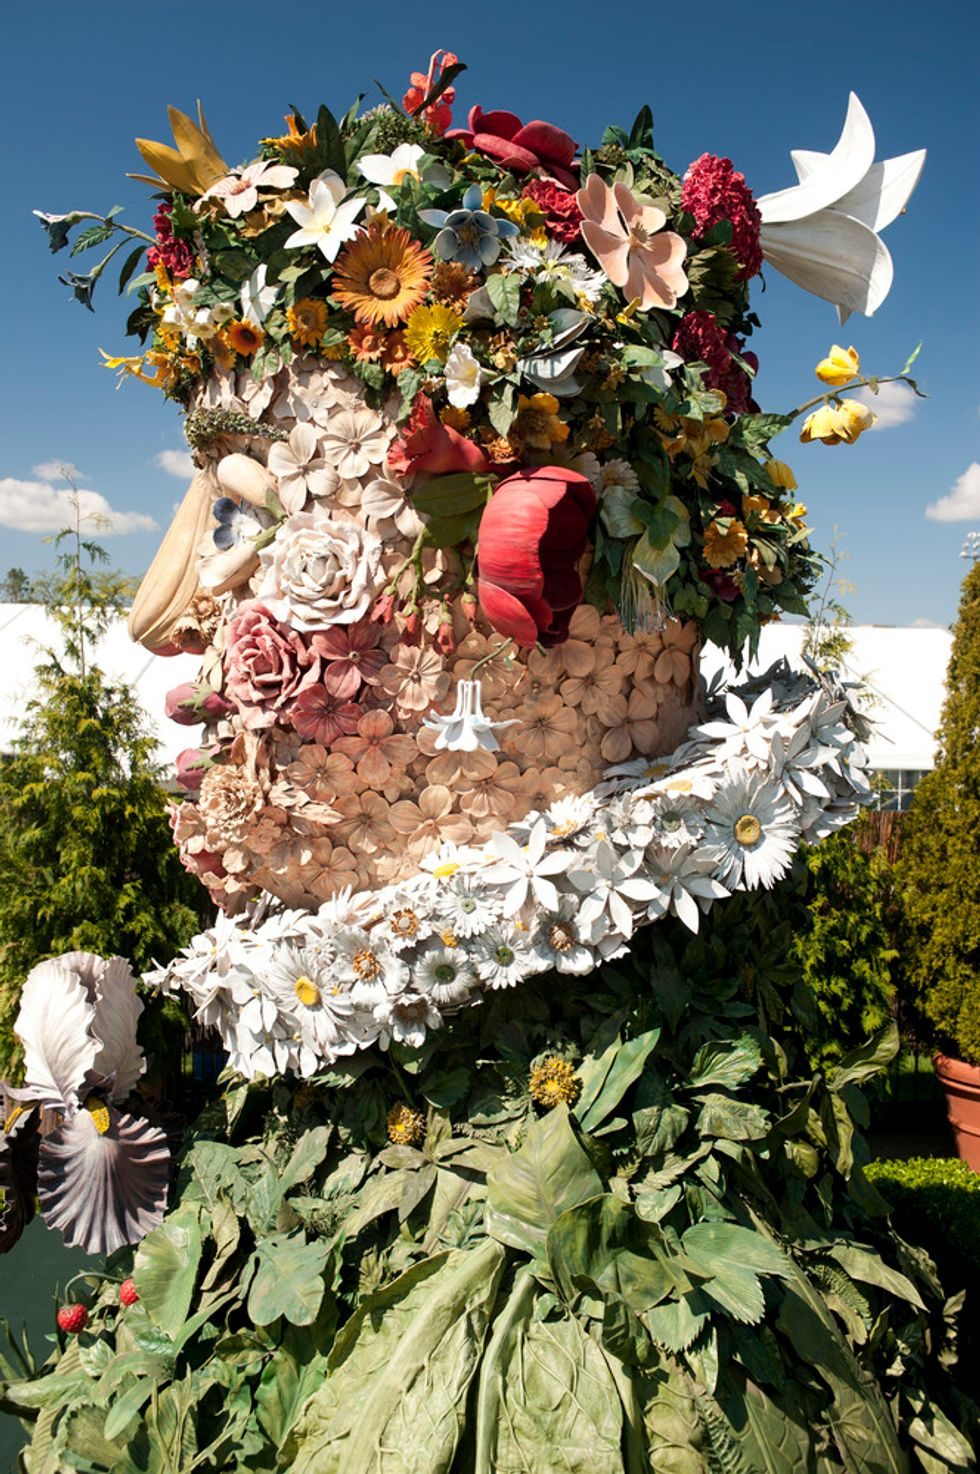 Arcimboldo in the Round: Exploring the New Sculptures at the New York Botanical Garden